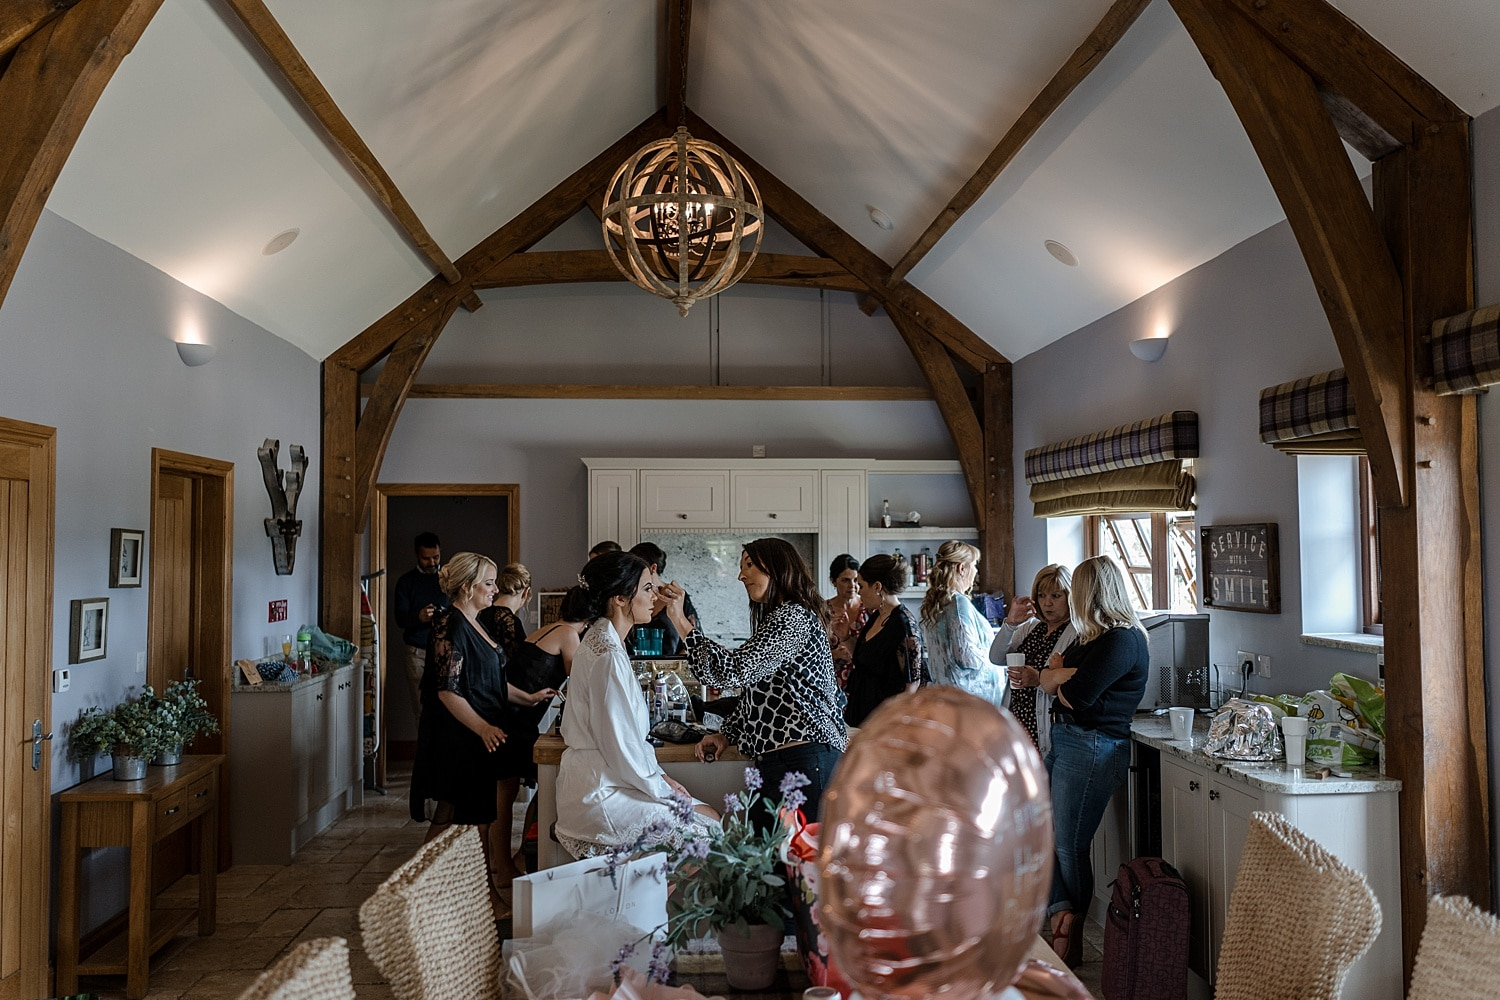 Bridal preparations at Fairyhill's Mulberry House